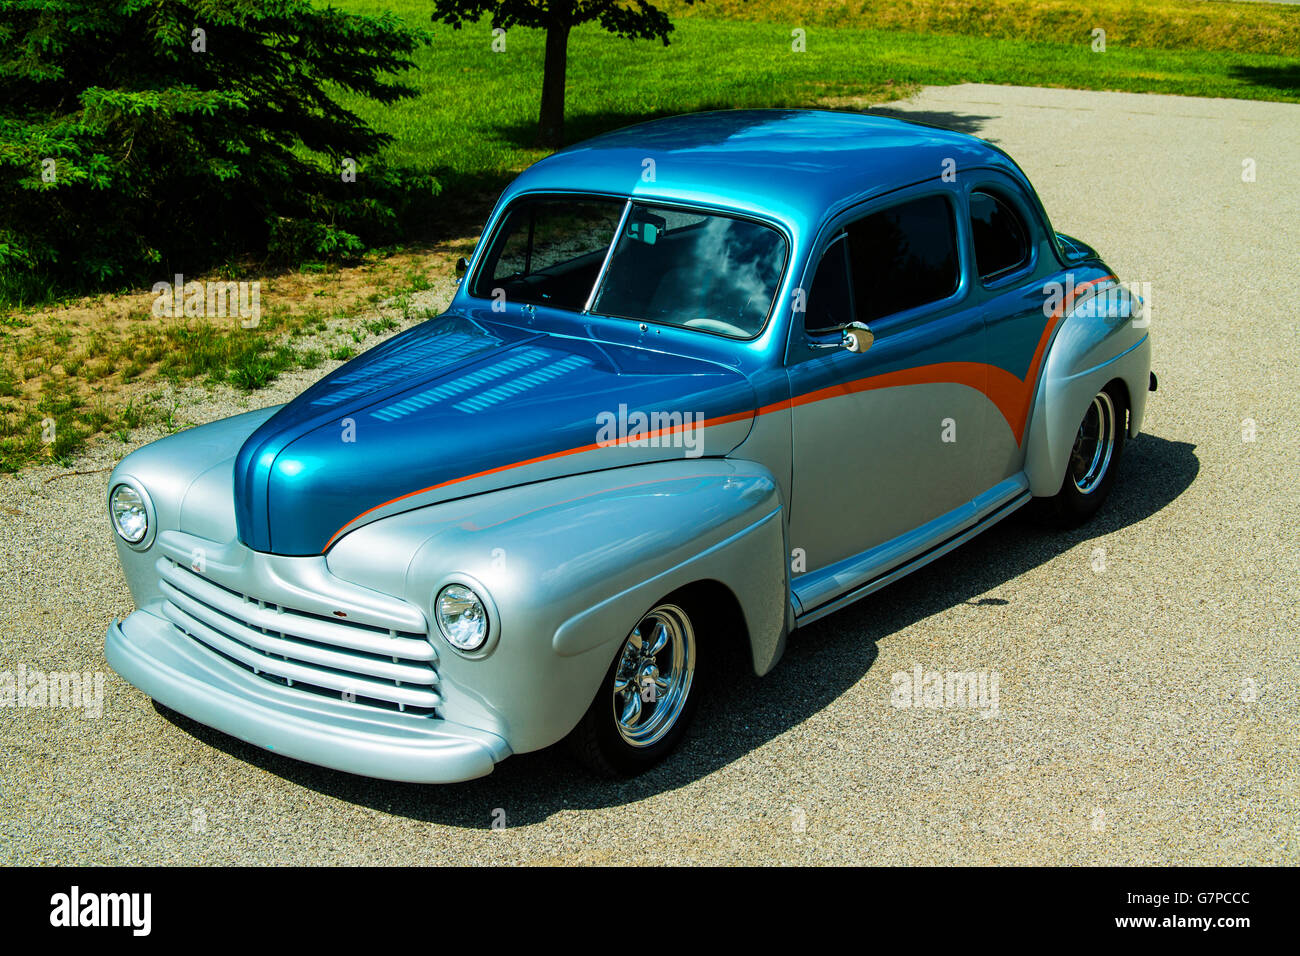 1947 Custom Ford 2 door Coupe - Stock Image